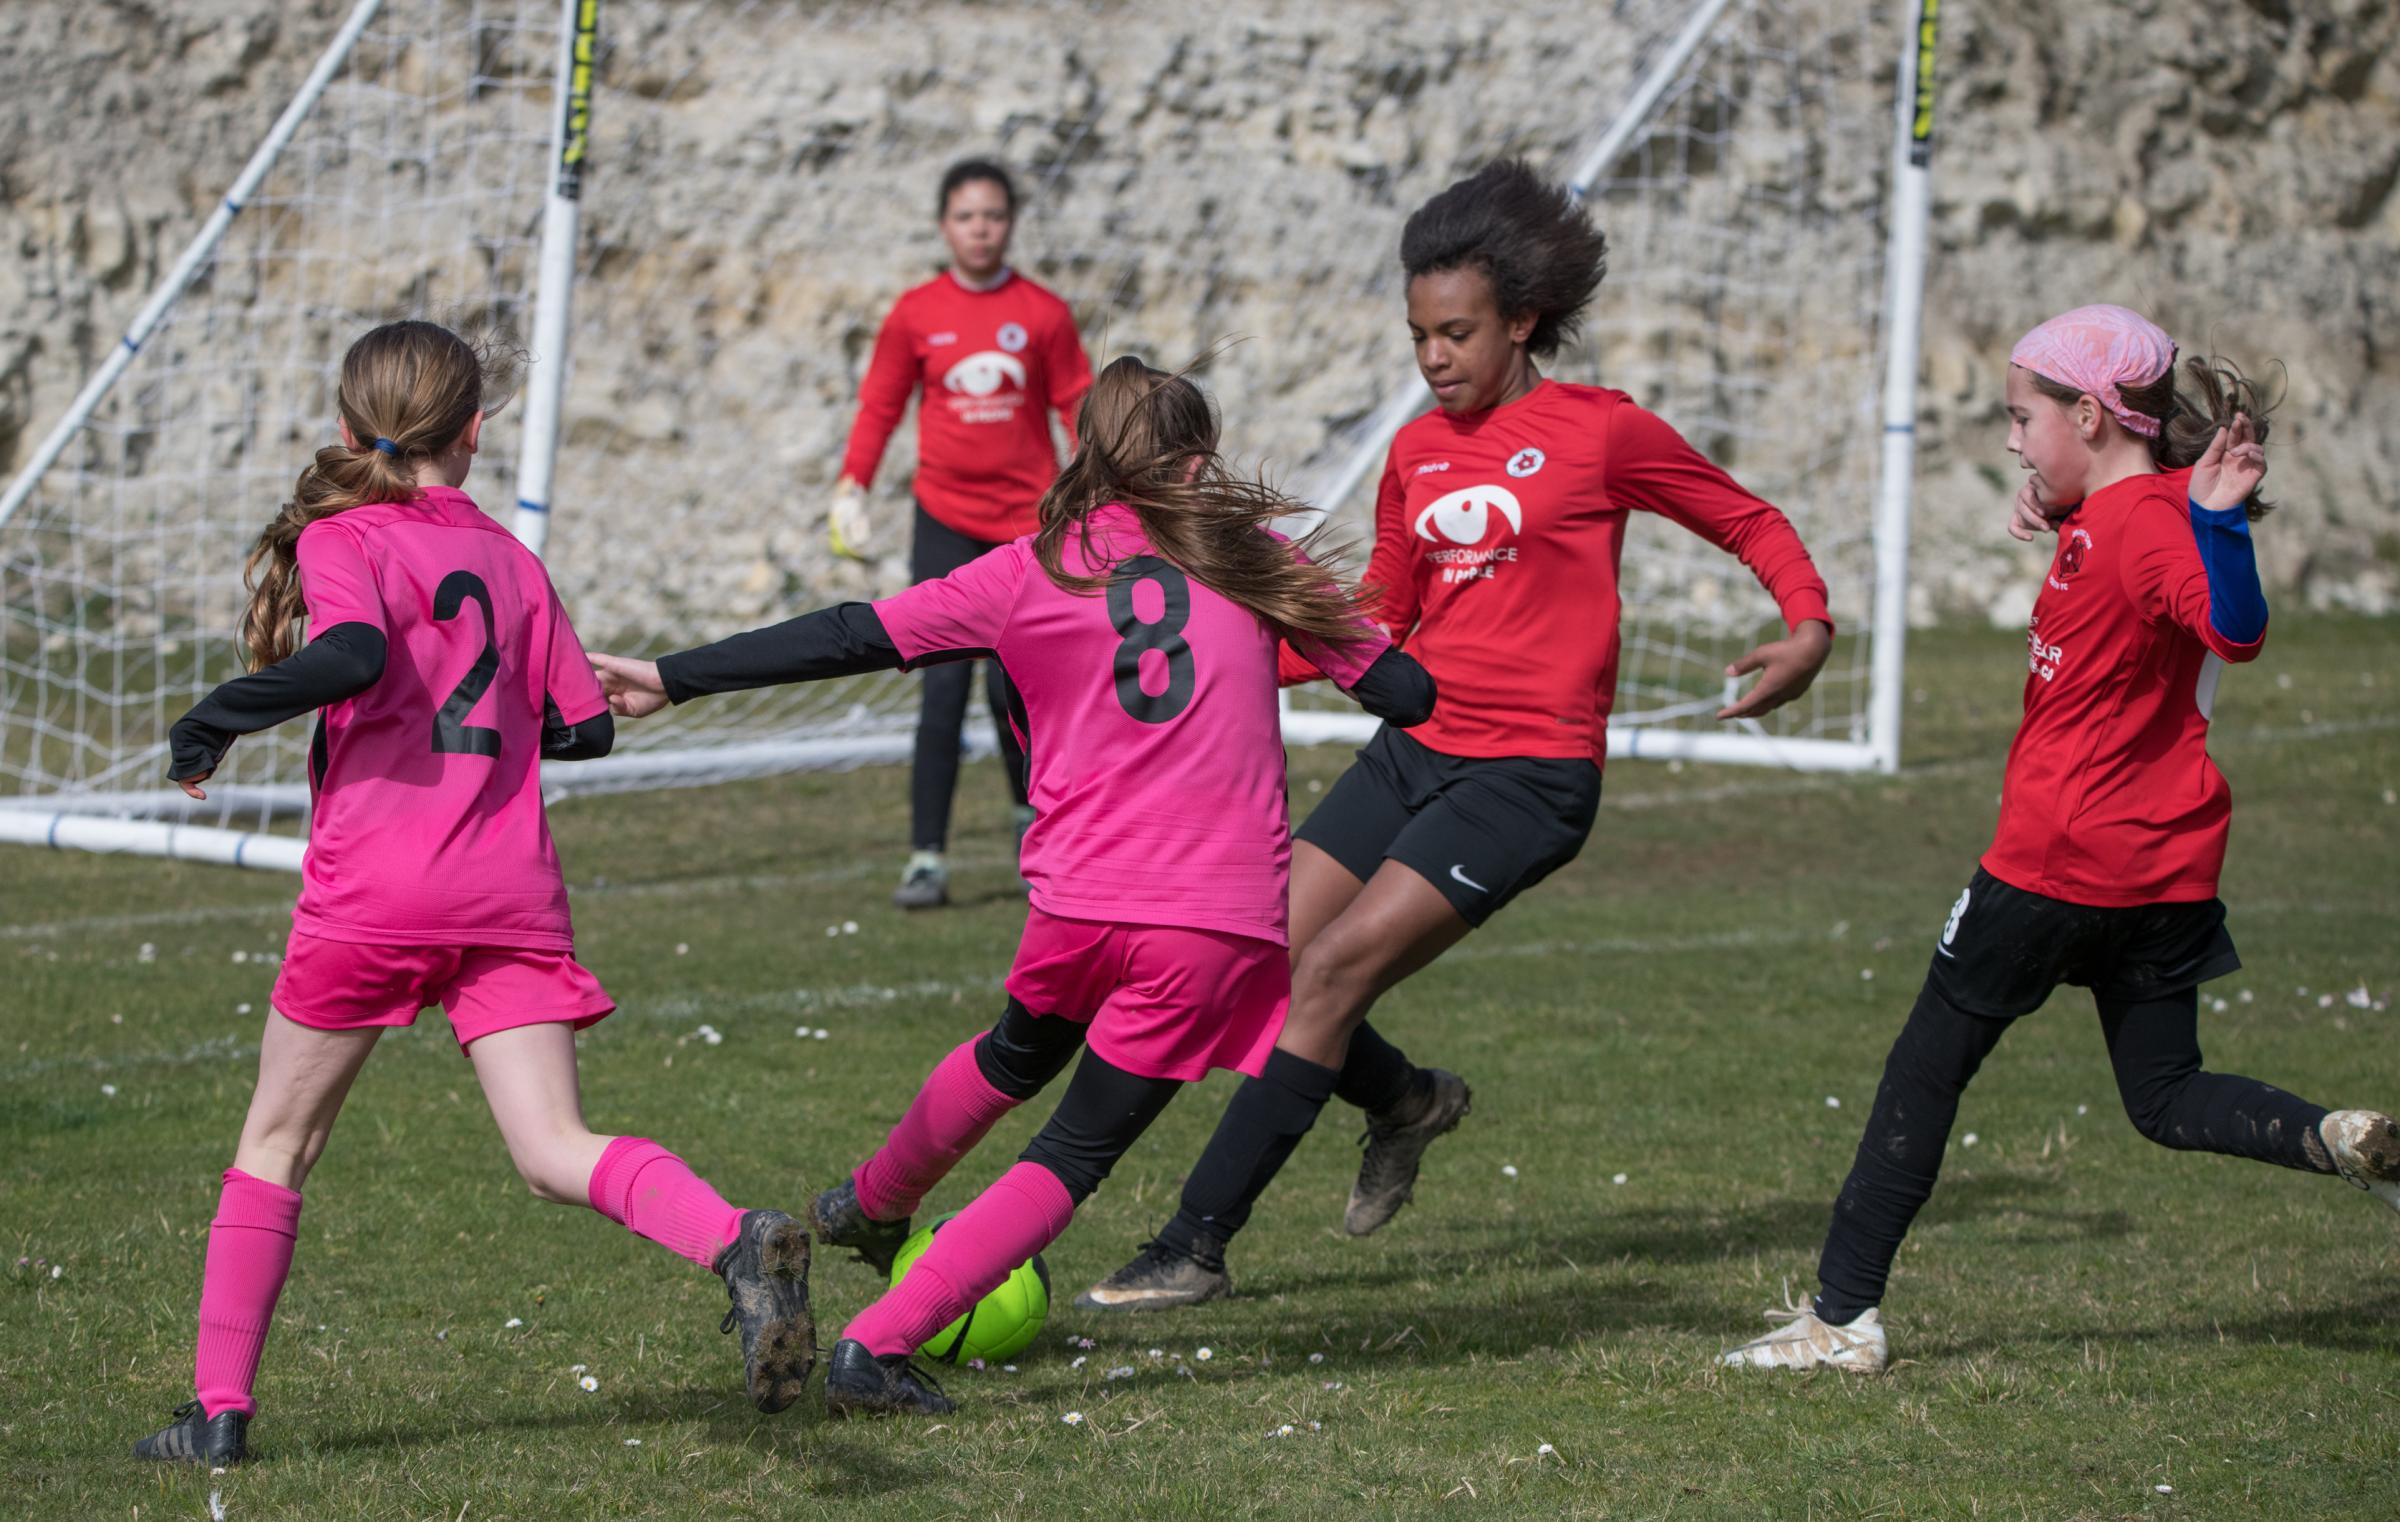 Action between Vectis Youth U13s (wearing pink) and Brading Town.